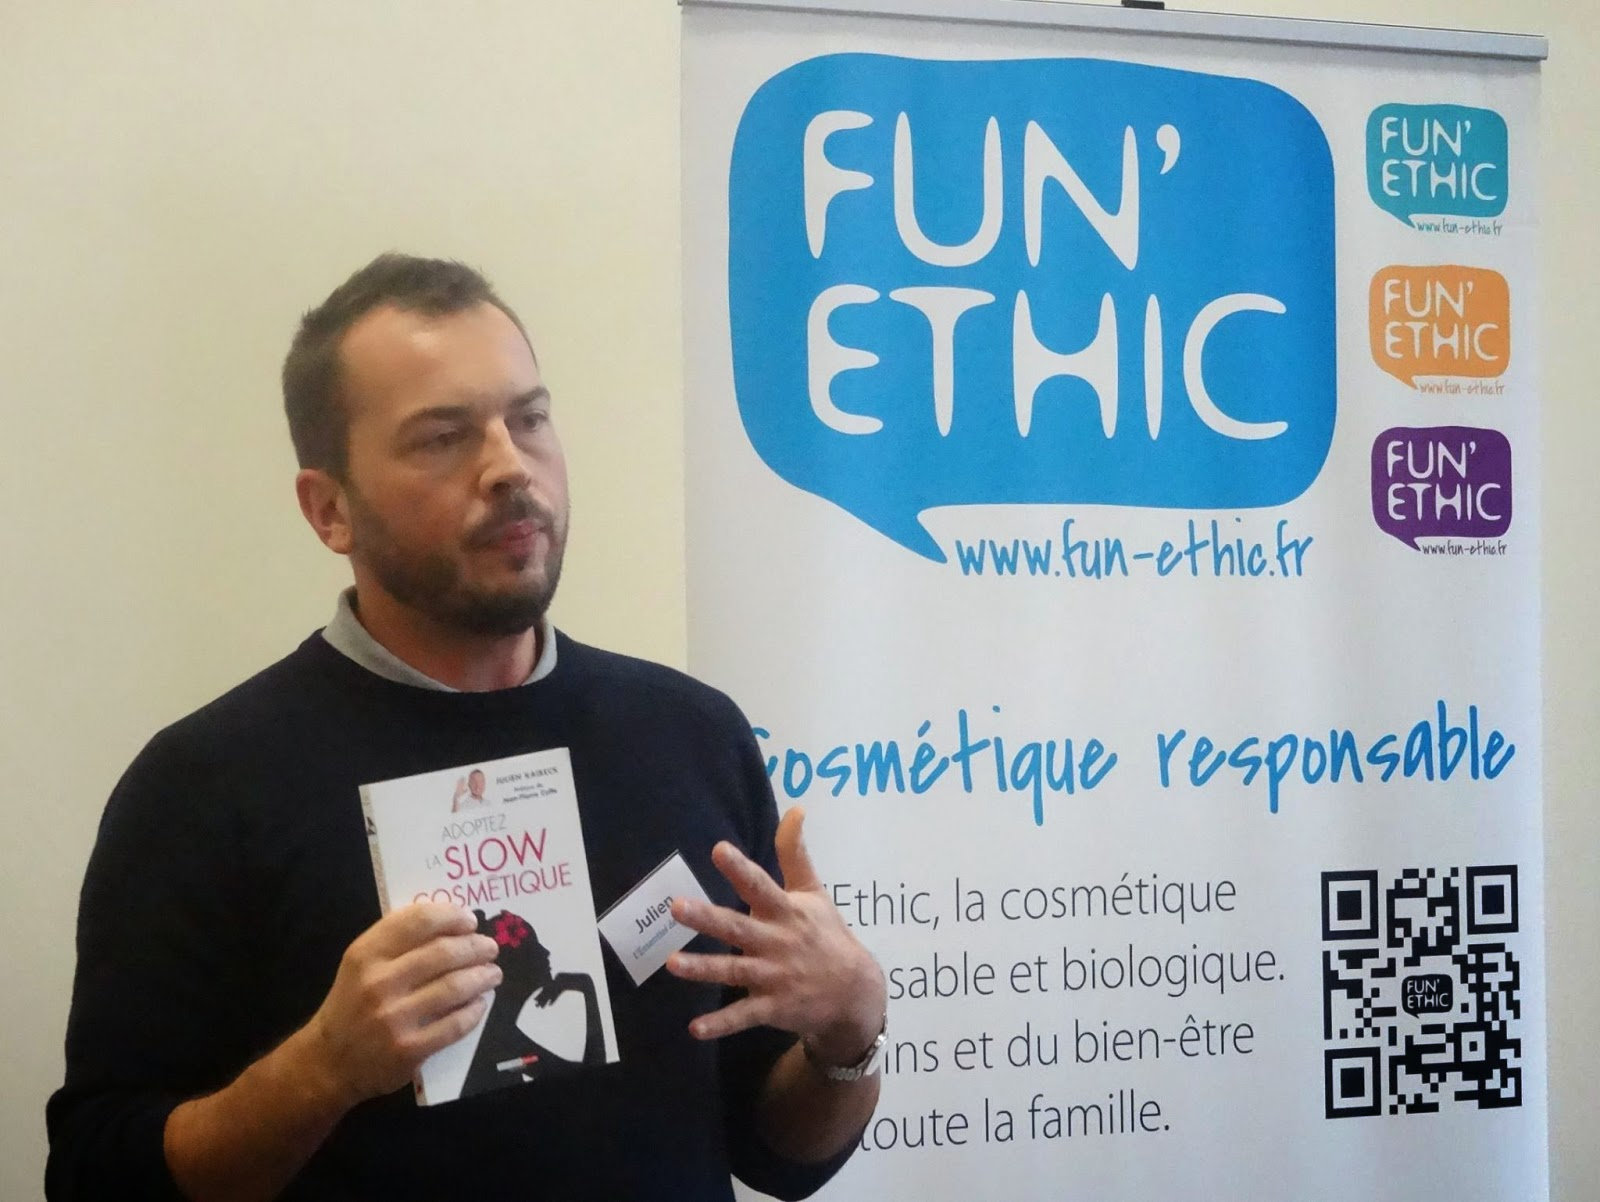 intervention, fun ethic, belgique, slow cosmetique